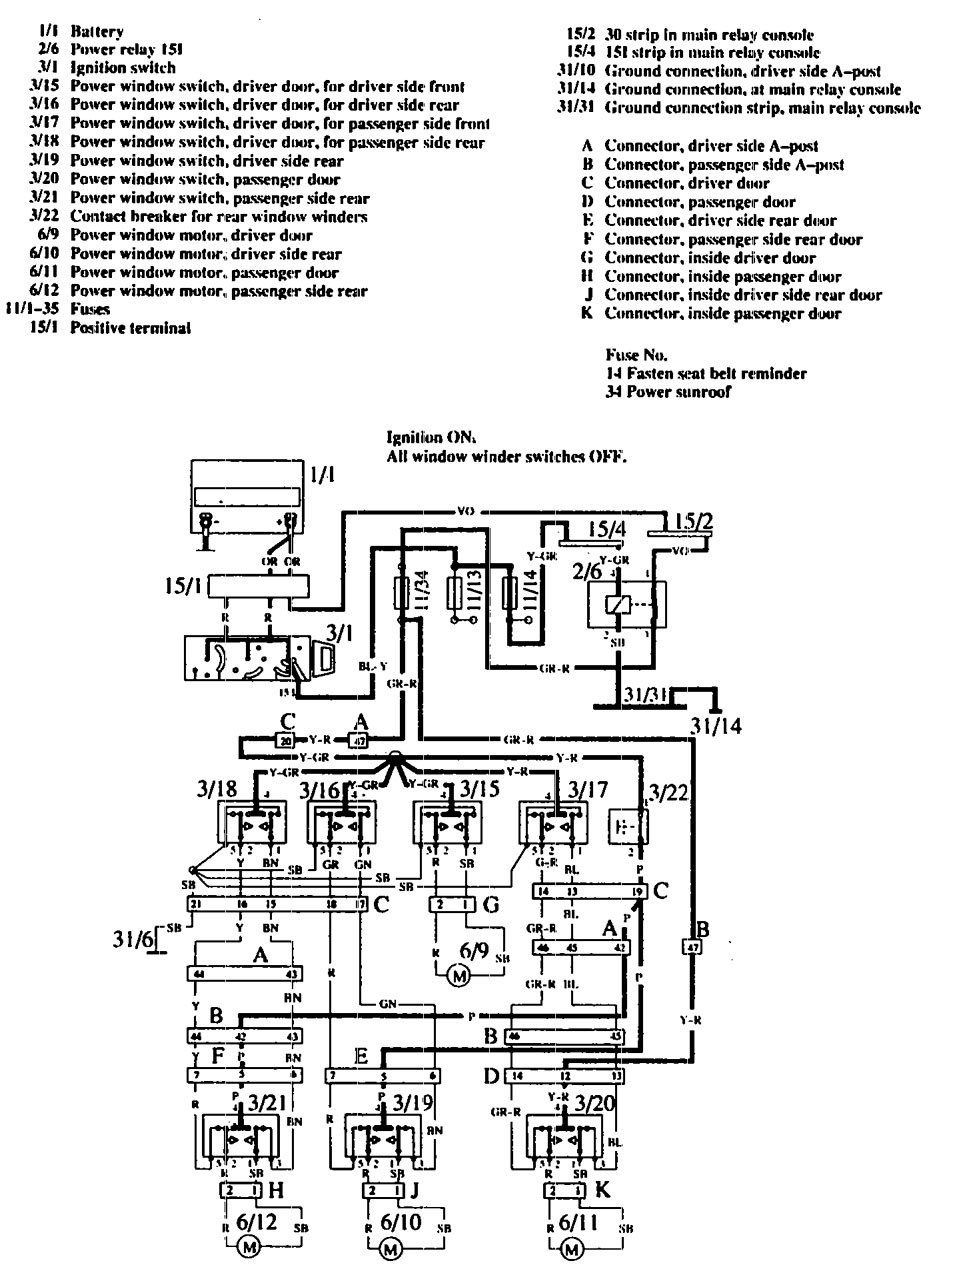 Volvo 760 Relay Diagram Trusted Schematics 1990 740 Gle Wagon Engine Wiring Diagrams Power Windows Carknowledge 2001 Truck Location